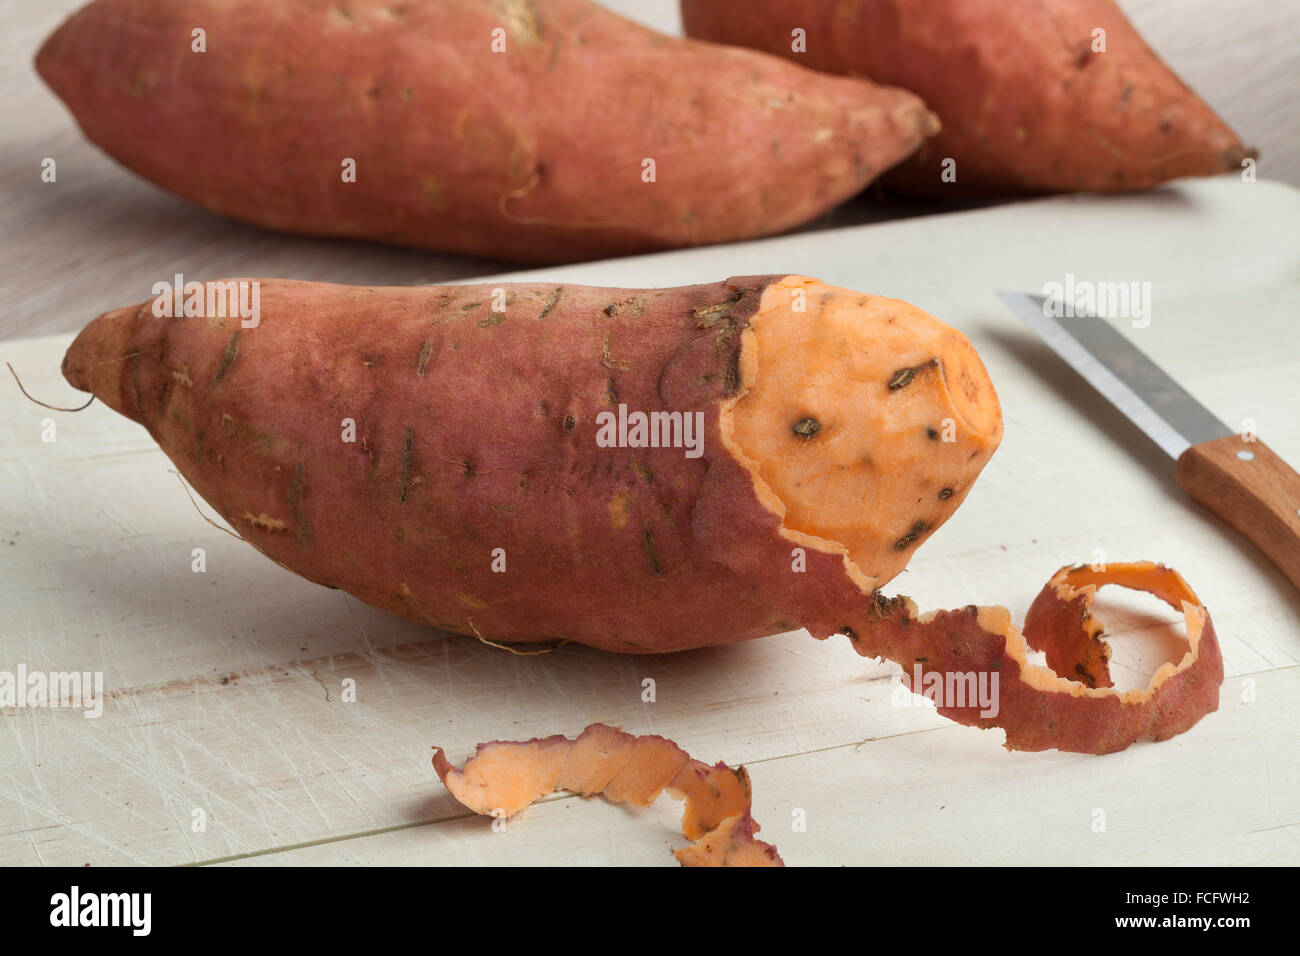 Partially peeled fresh sweet potato - Stock Image